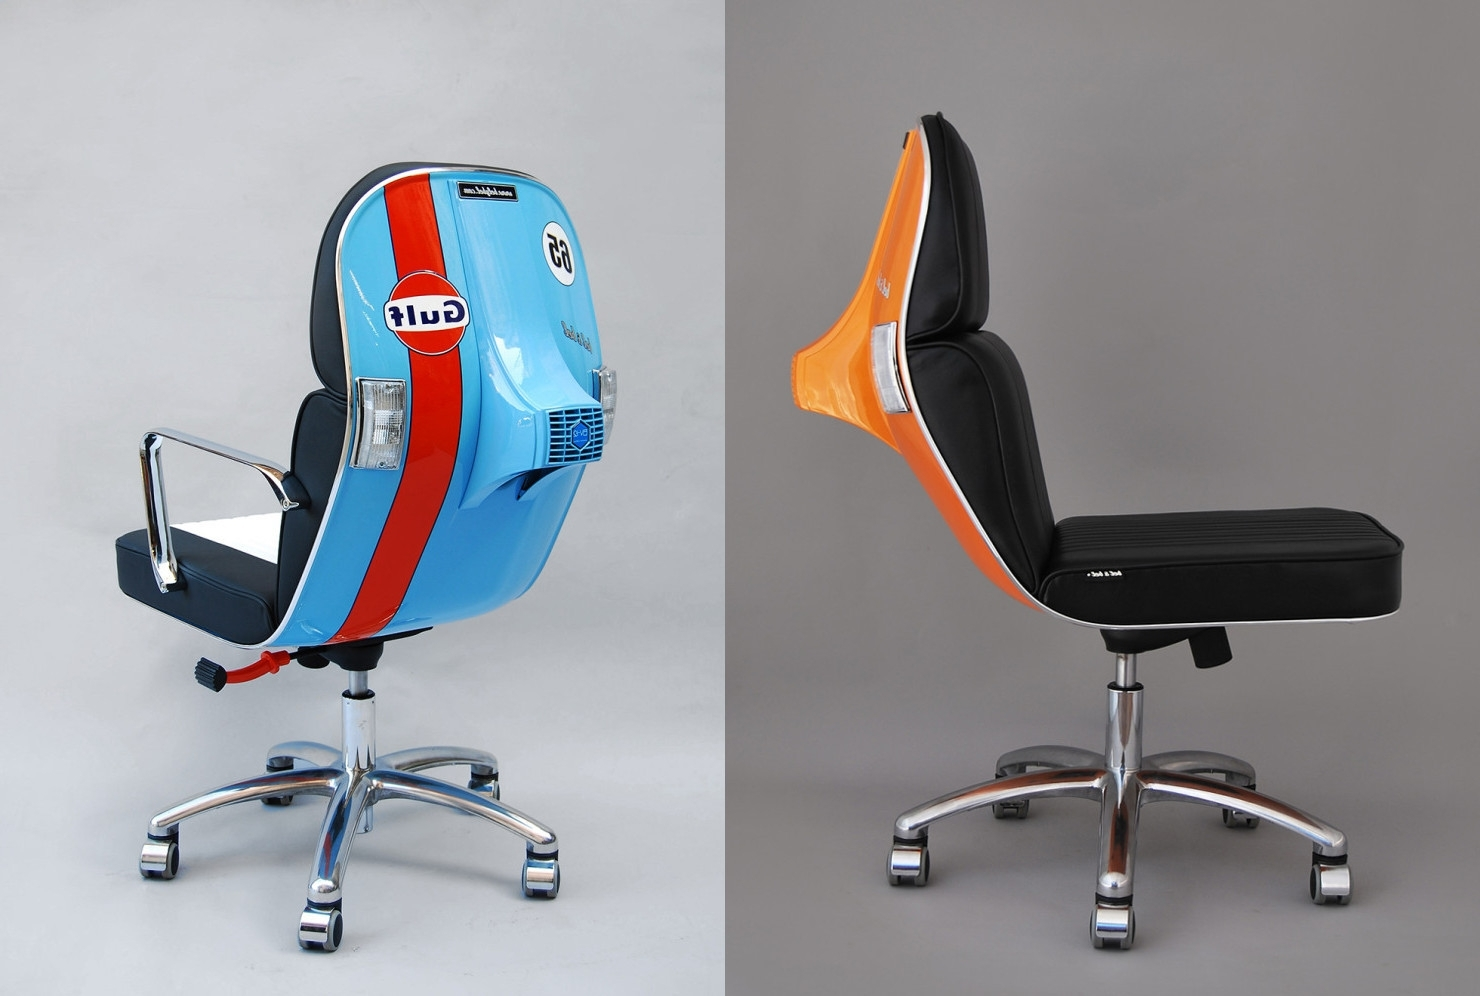 Vespa Side Chairs Intended For Newest Office Chairs Made Out Of Old Vespa Scooters / Boing Boing (View 18 of 20)